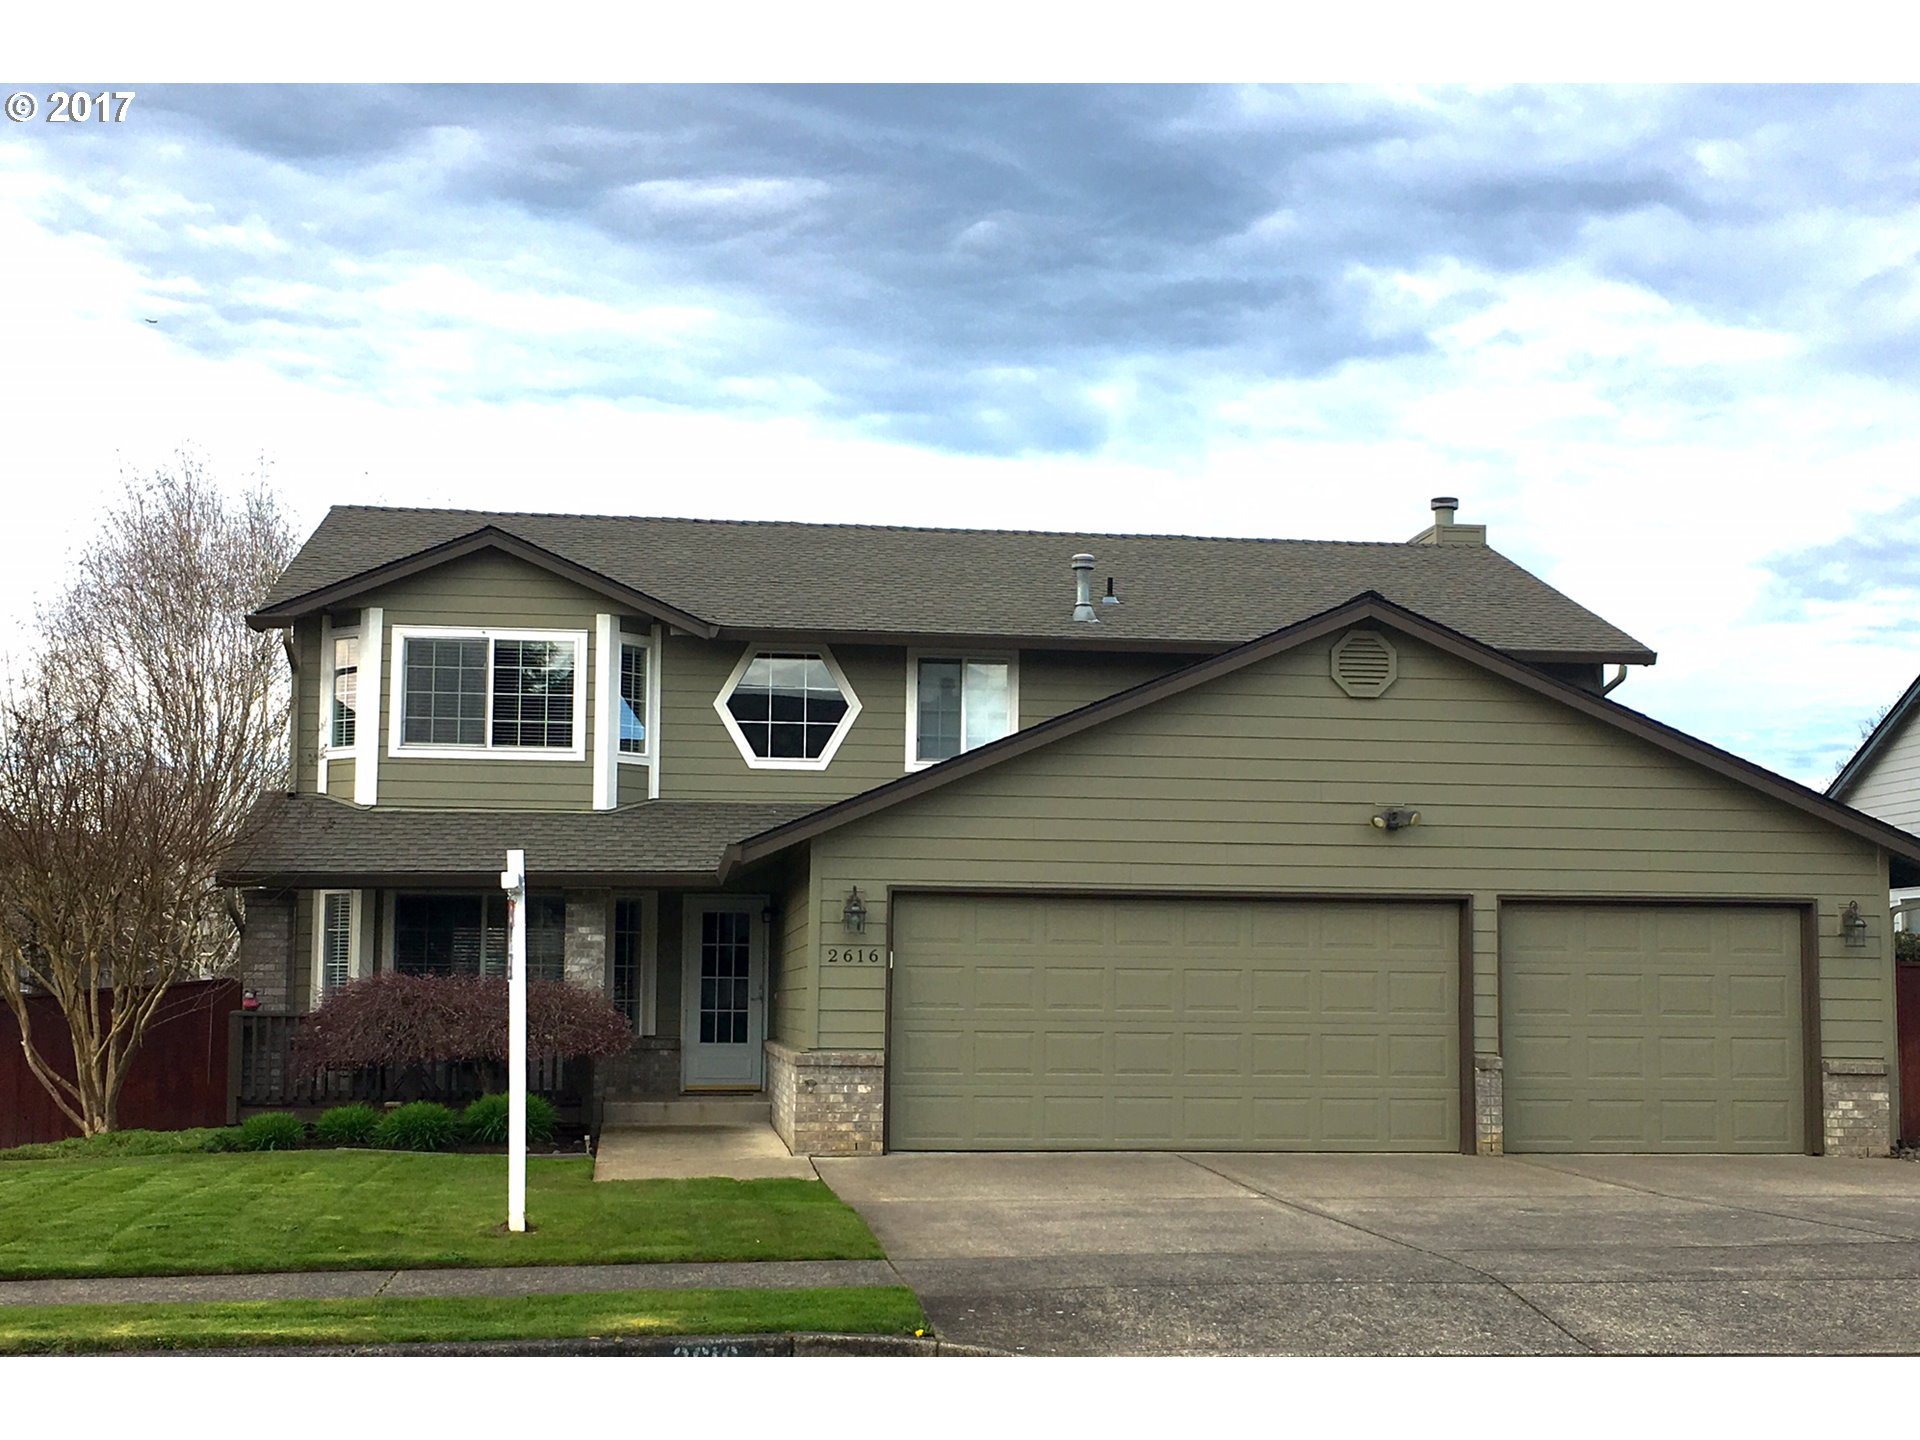 2616 NW 116TH ST, Vancouver, WA 98685